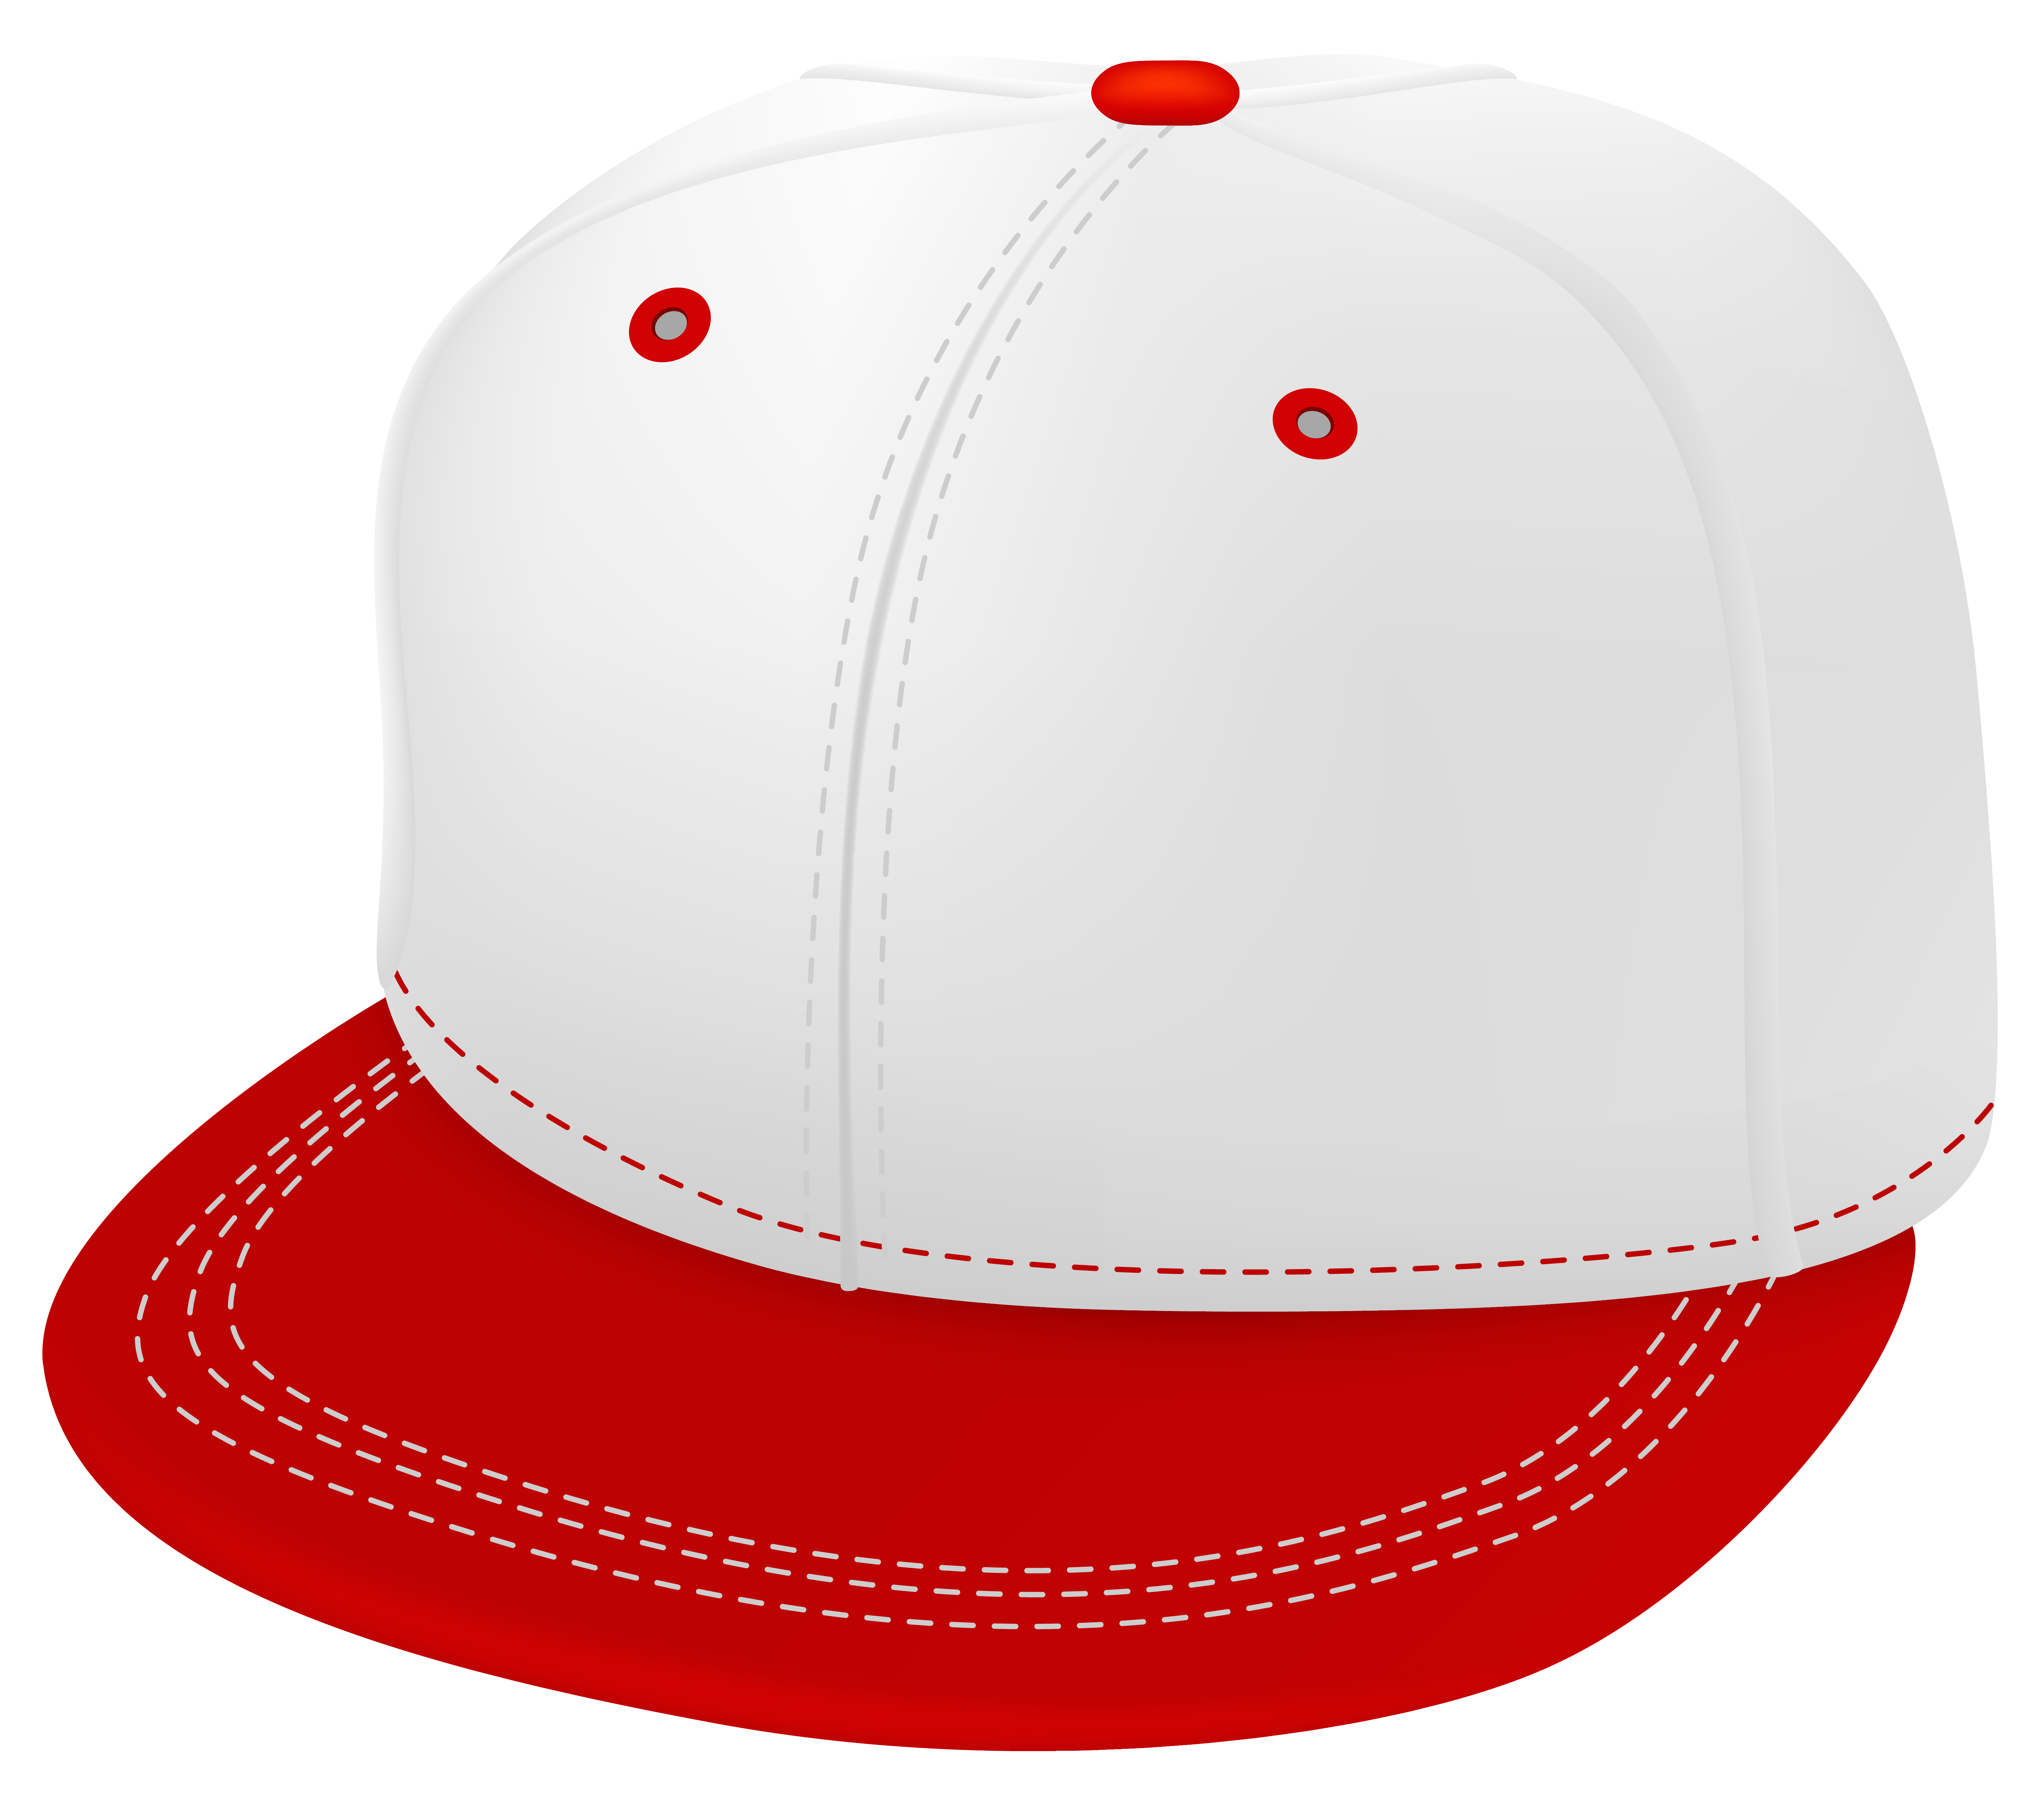 Red baseball hat clipart transparent download Red and White Cap PNG Clipart - Best WEB Clipart transparent download